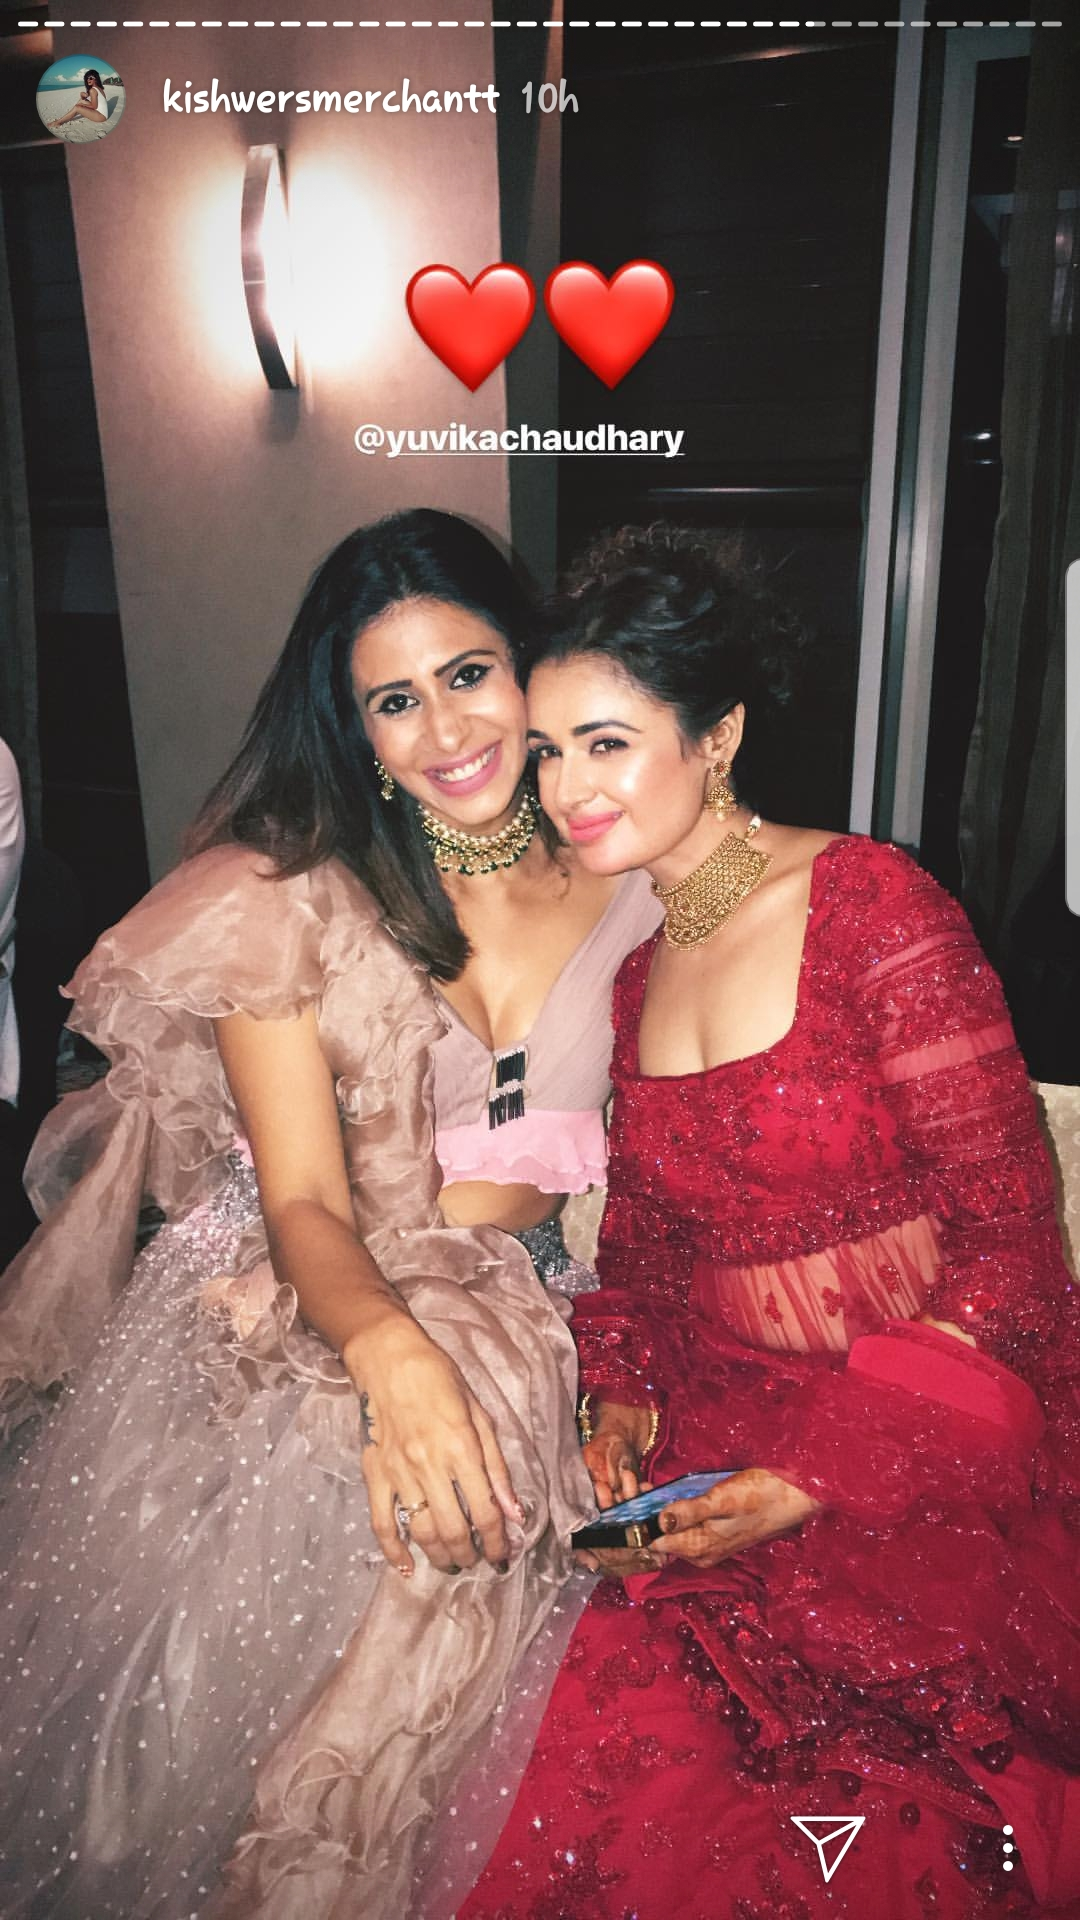 Yuvika and Kishwer